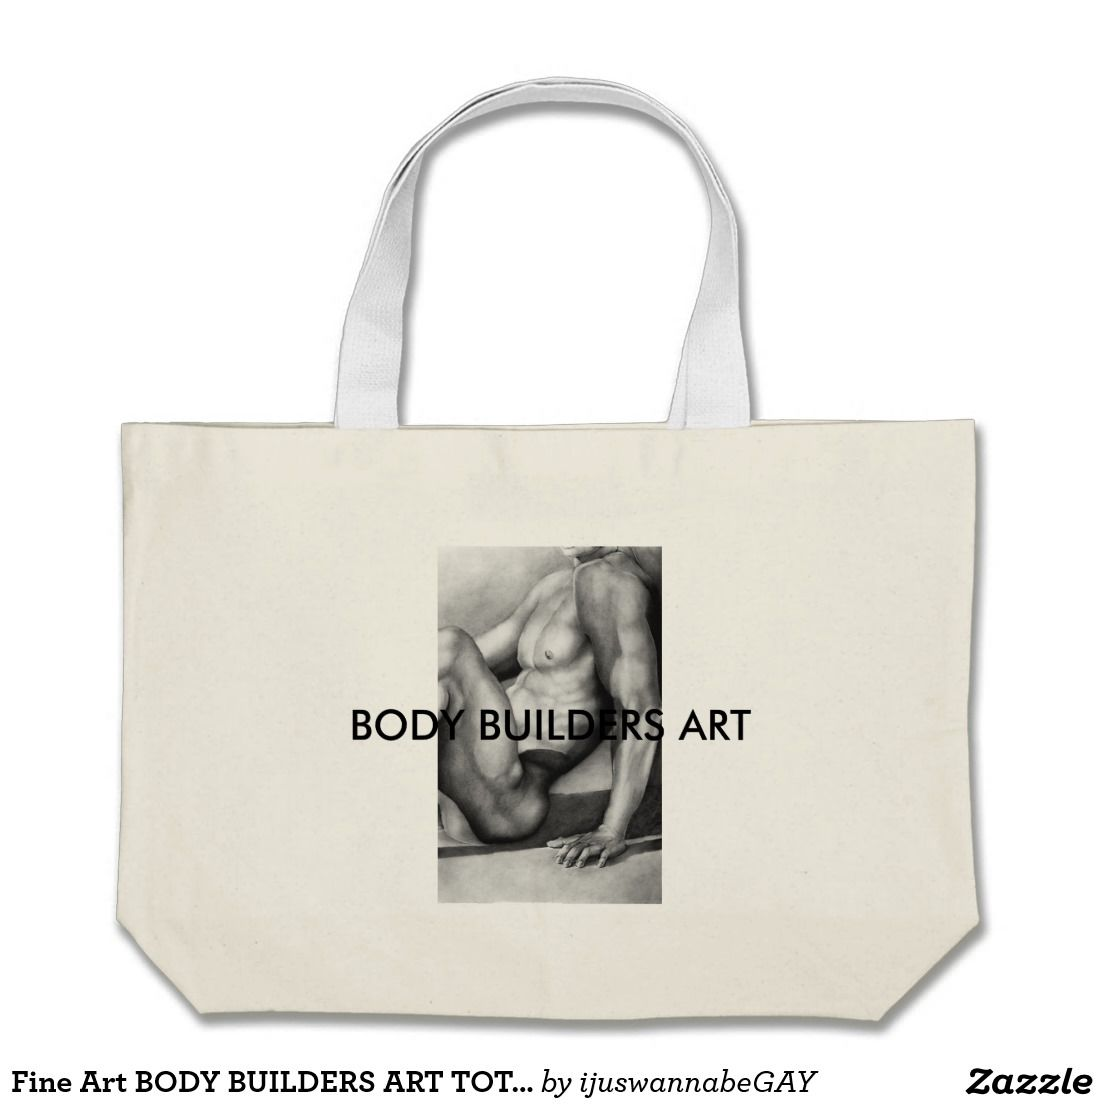 """Tote Bags with beautiful Fine Art Drawing of BODY BUILDERS ART TOTE BAG - by """"RjF"""".xx."""